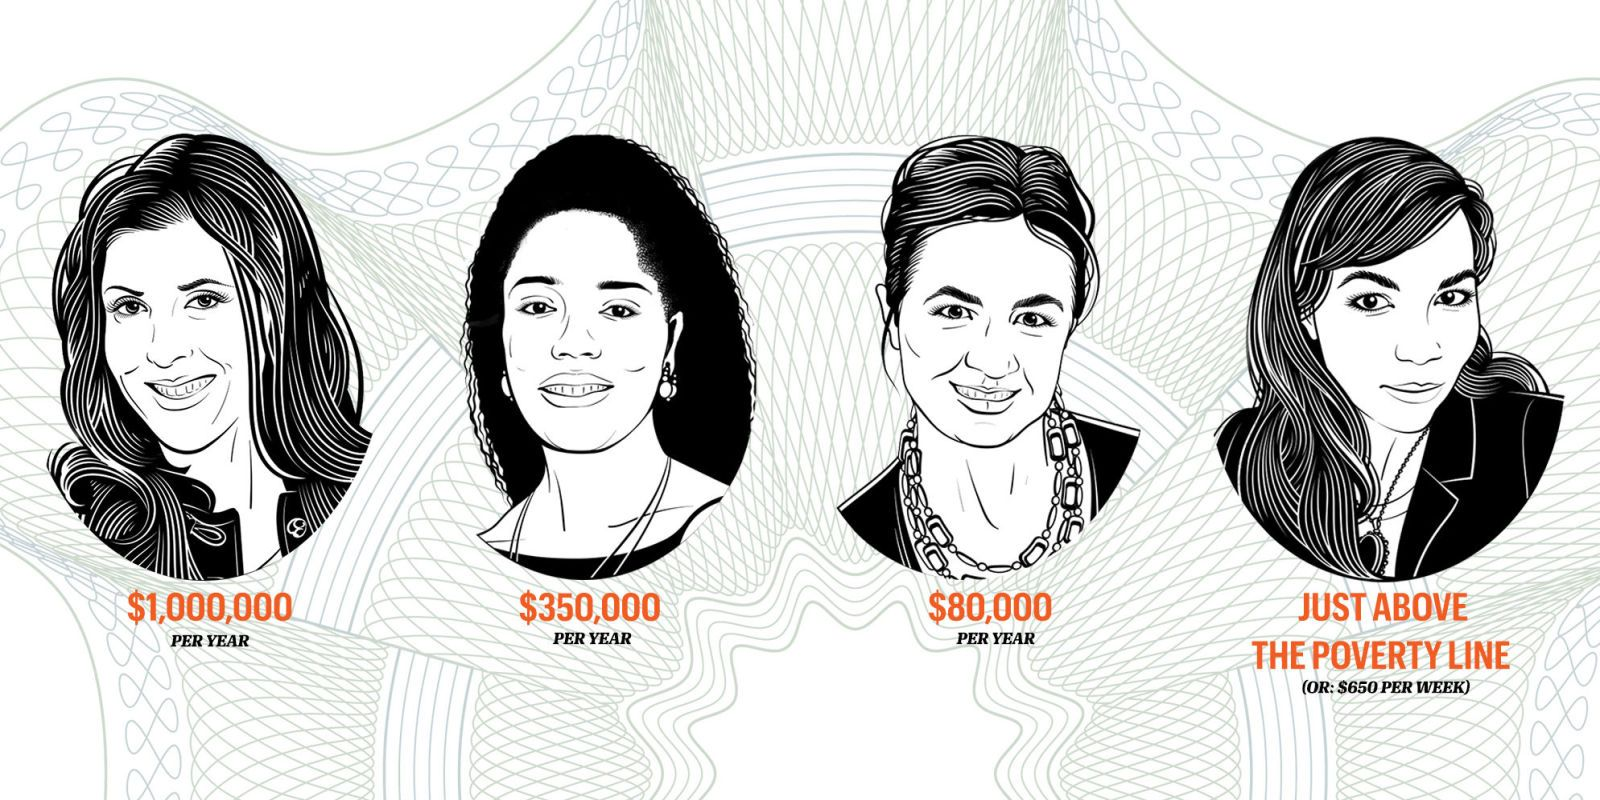 4 Women with 4 Very Different Incomes Open Up About the